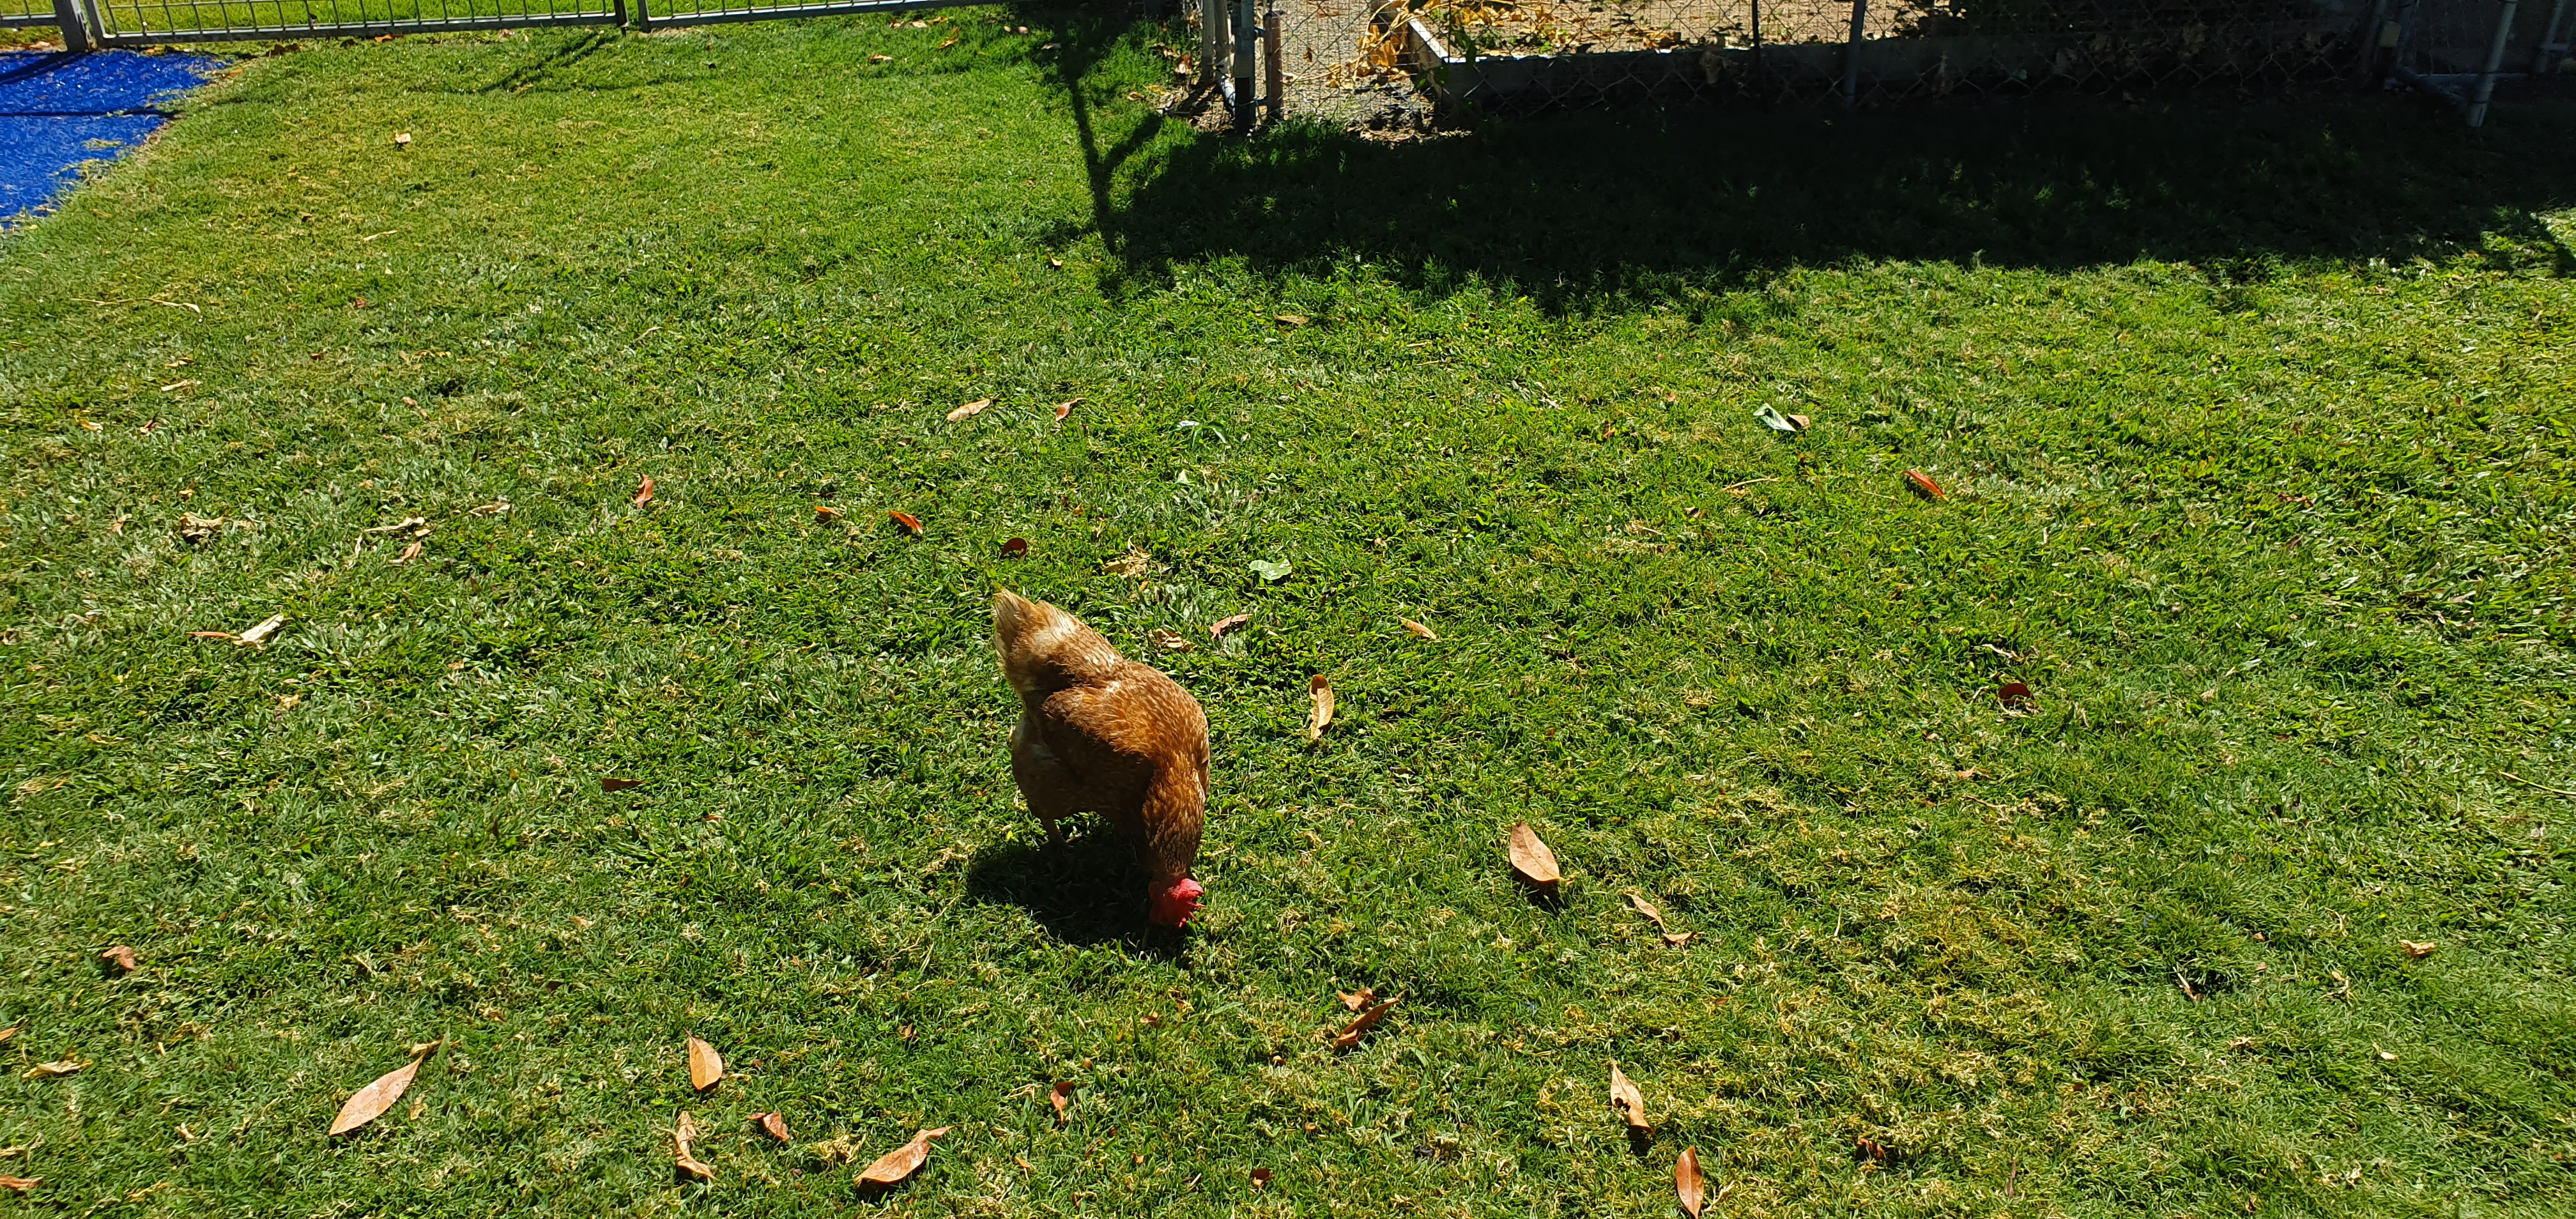 henny-penny-the-friendly-hen